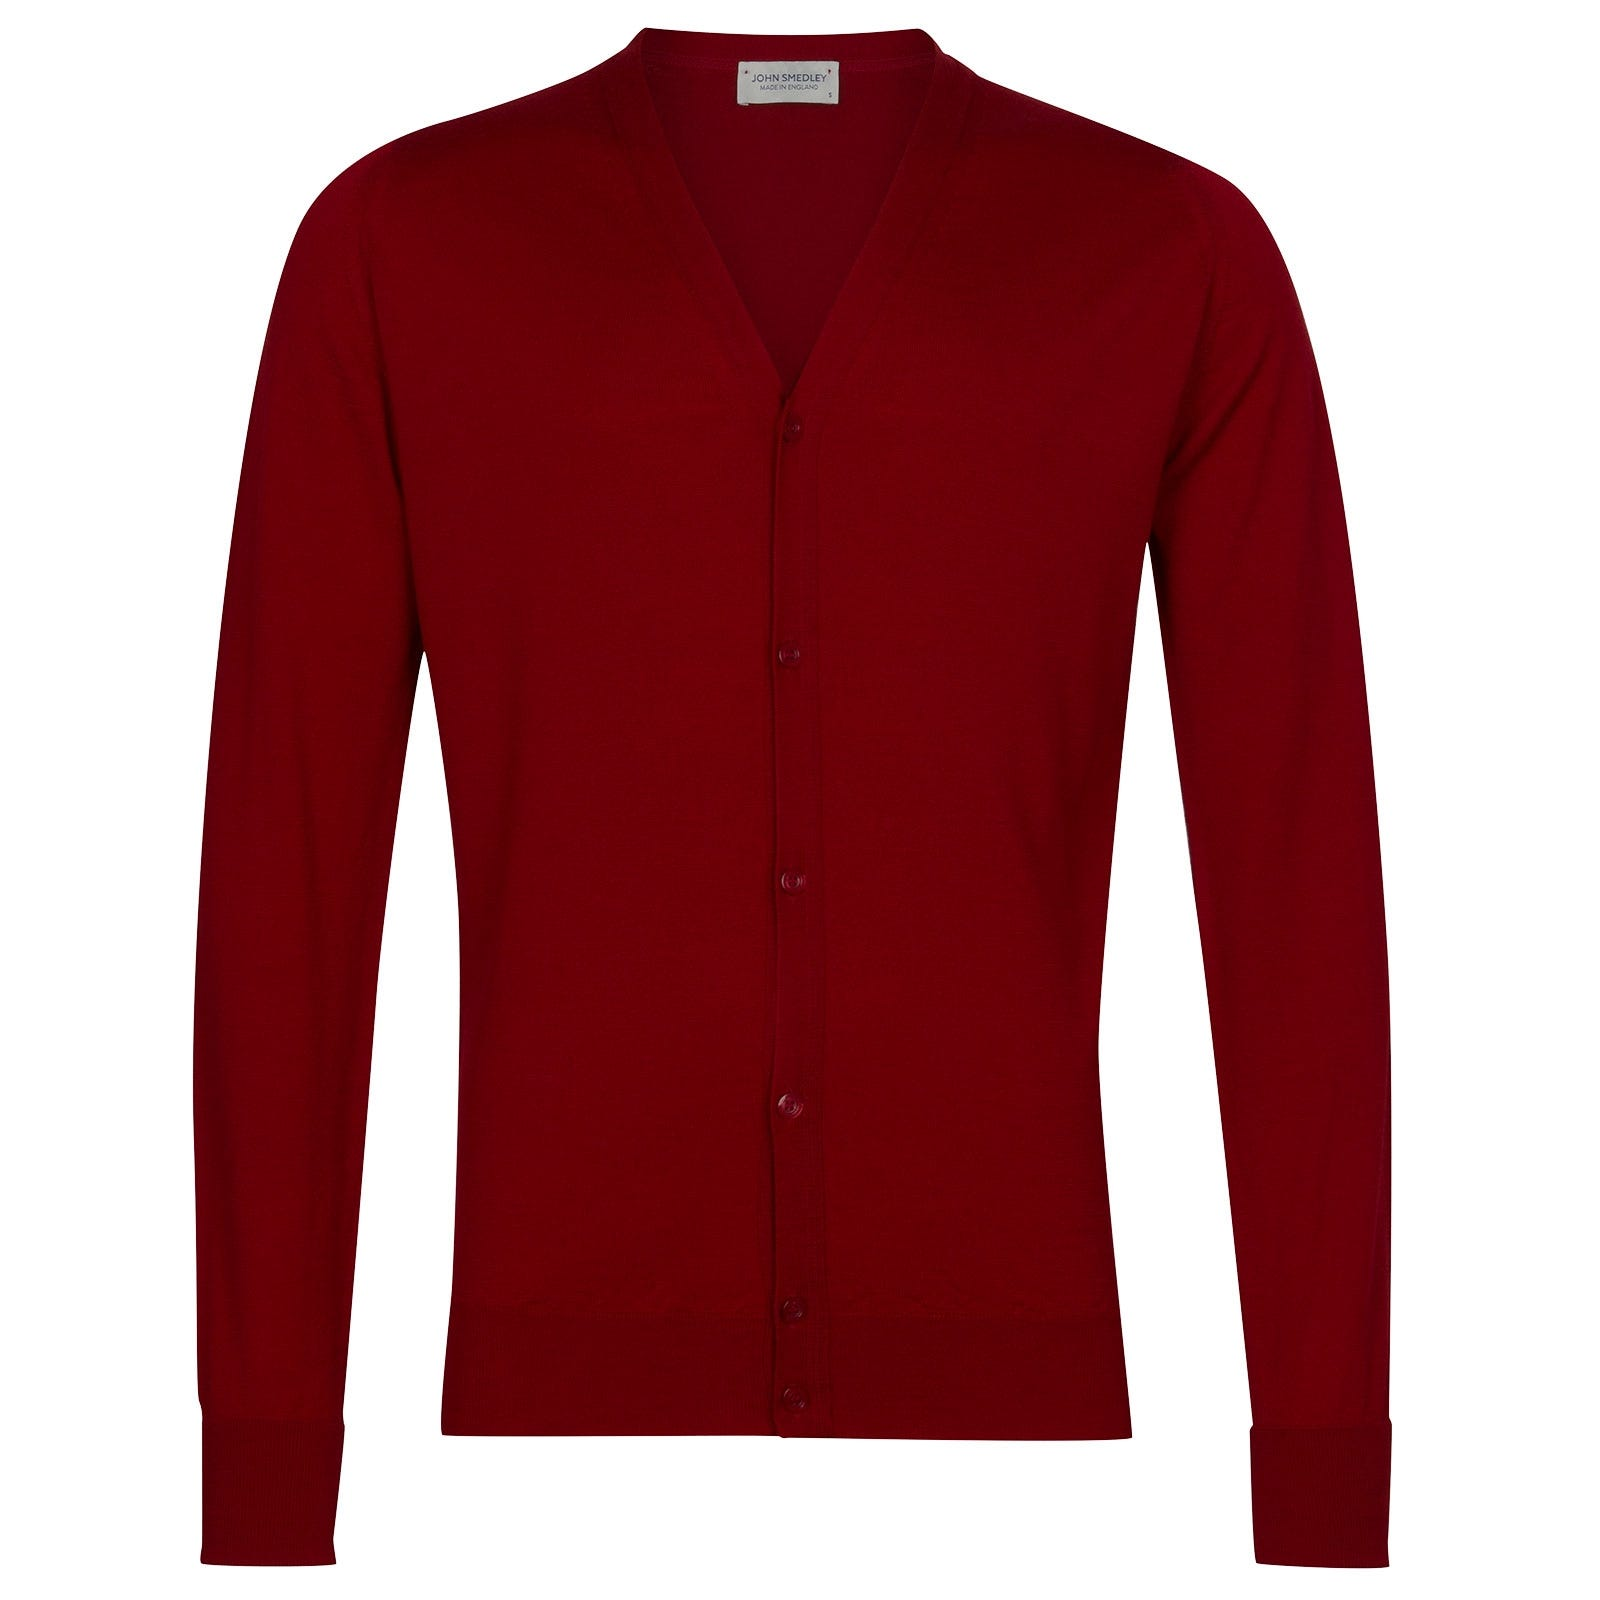 John Smedley Bryn Merino Wool Cardigan in Thermal Red-S